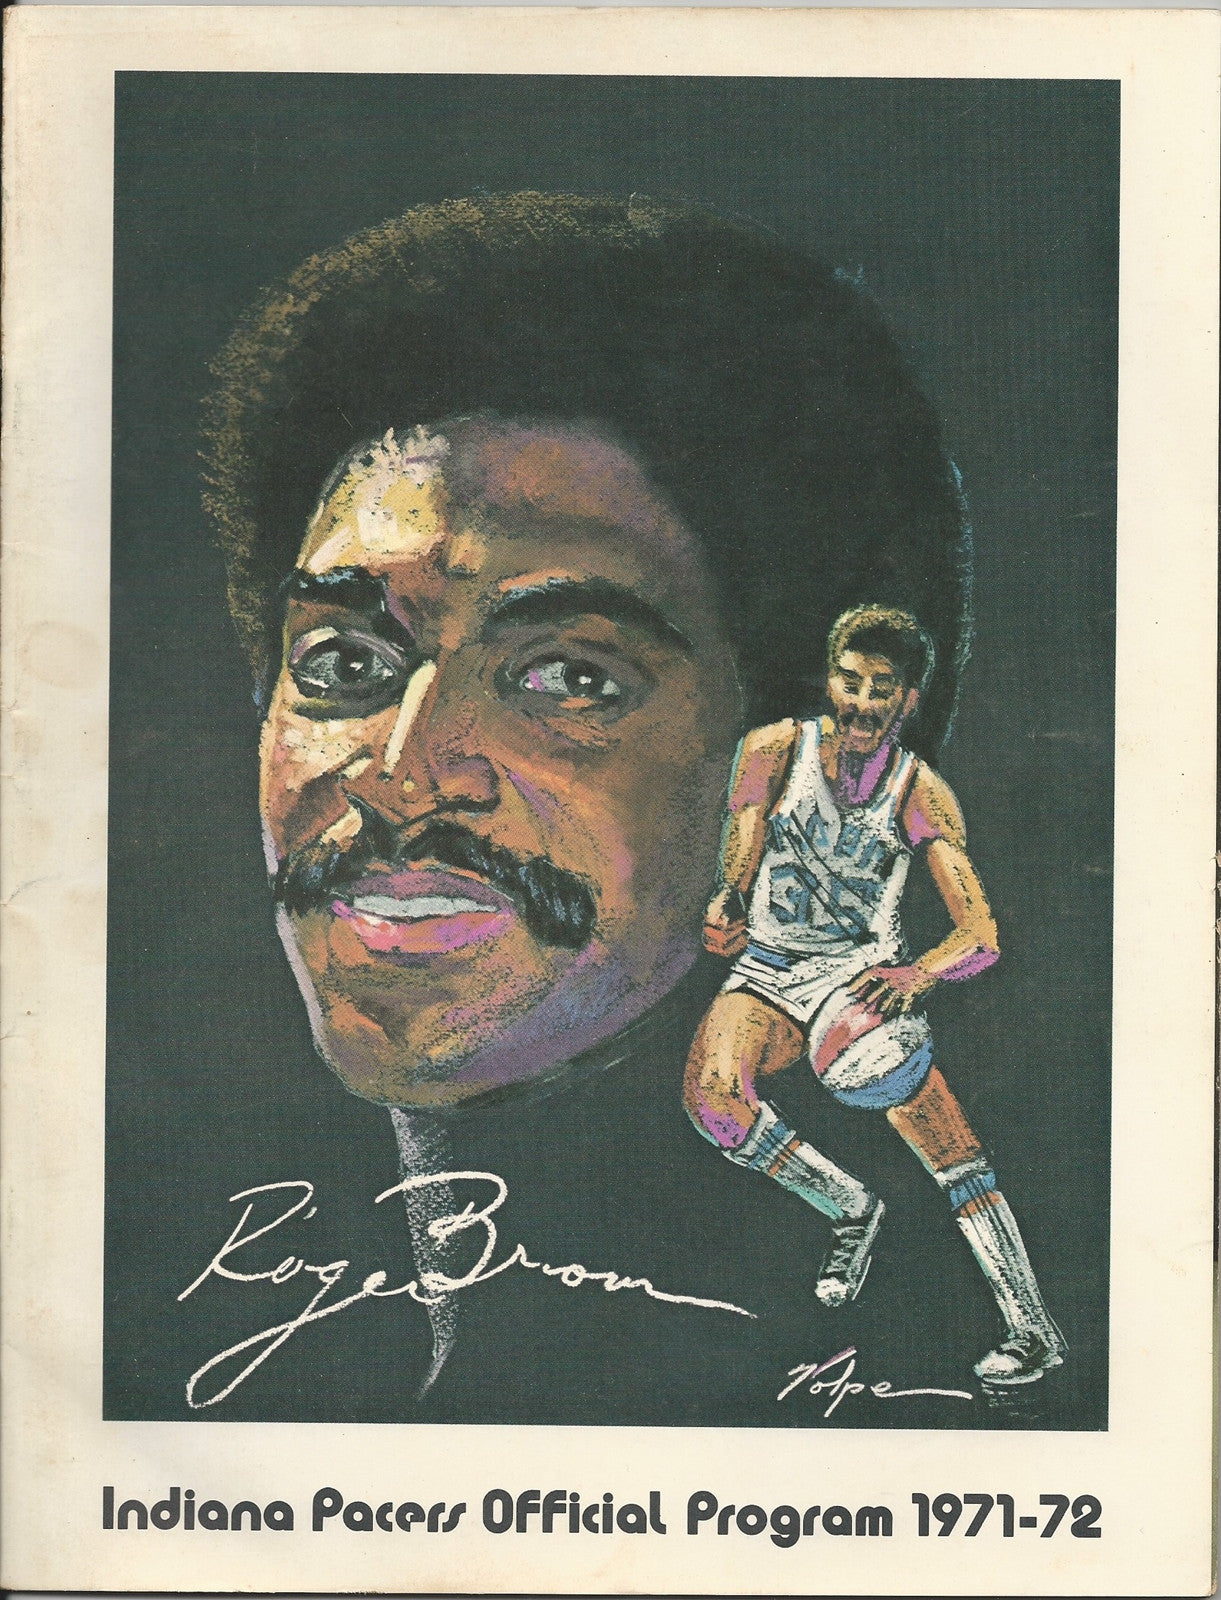 1971 Indiana Pacers vs Carolina Cougars ABA Basketball Program, Roger Brown Cover - Vintage Indy Sports